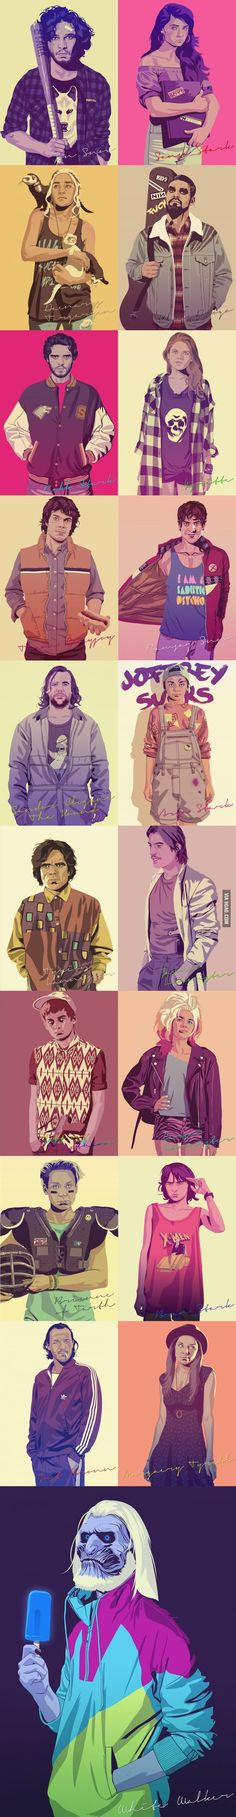 Game Of Thrones, Hipster Style. The best.